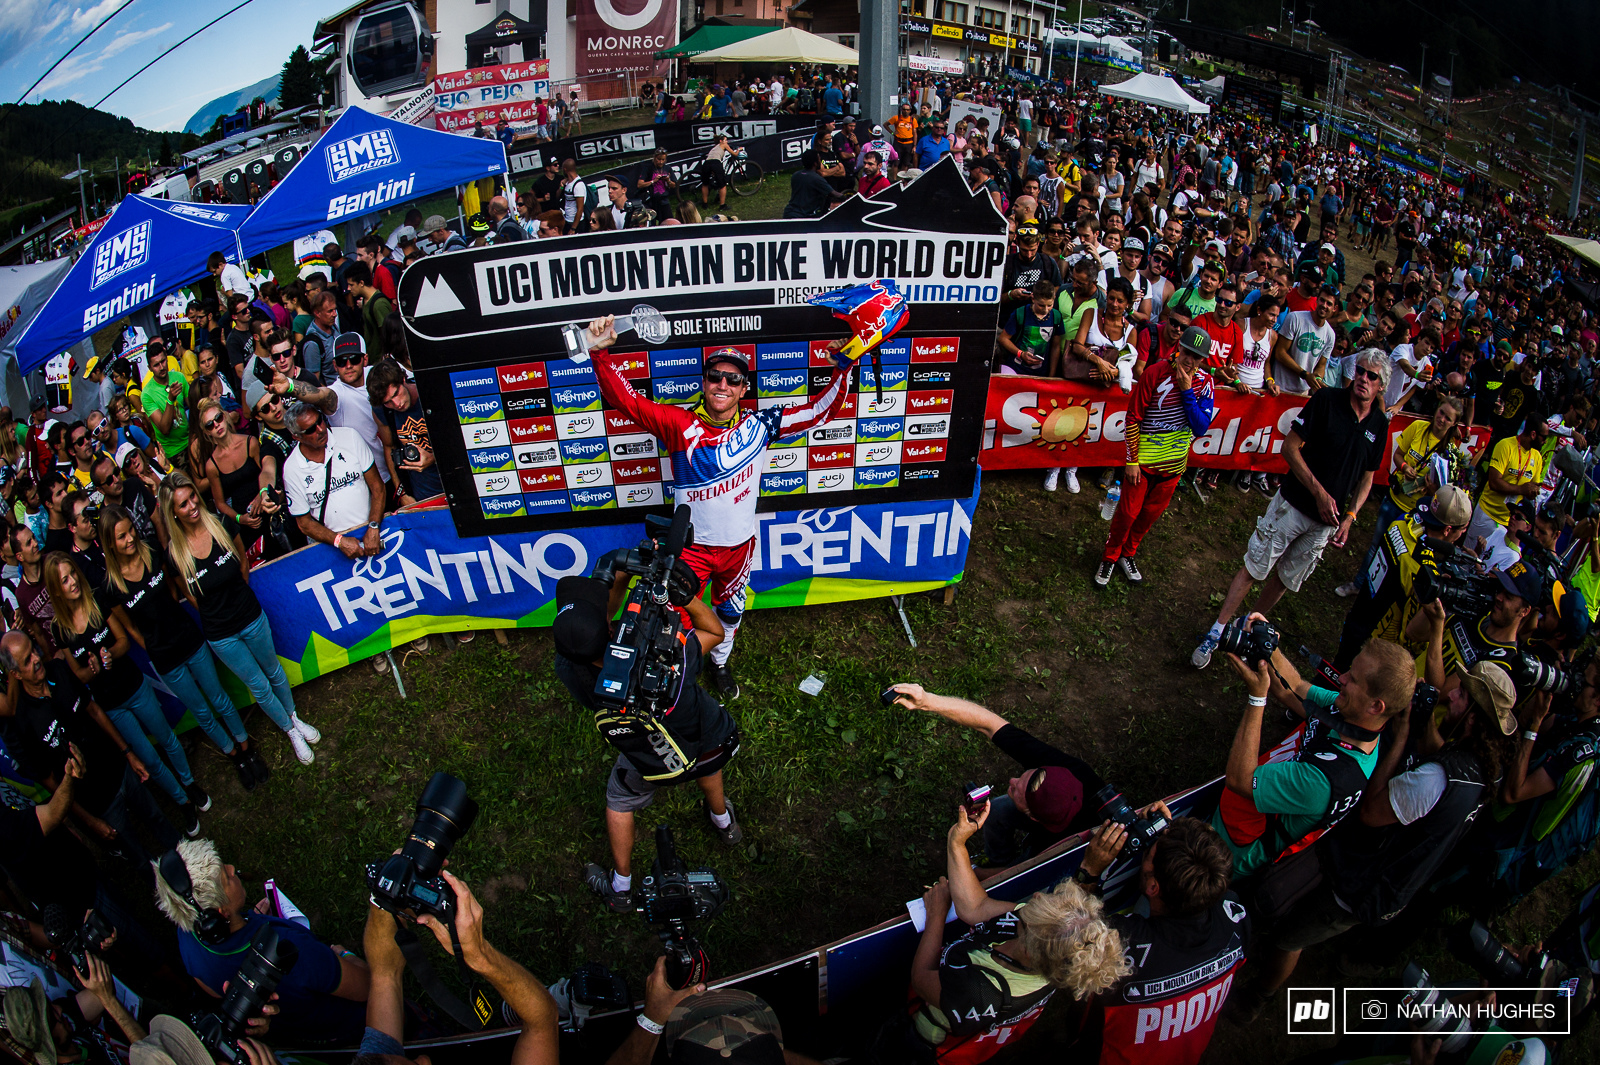 Earth-shattering talent and ground-breaking pace on a bike harnessed for a third time to produce a hat-trick of overall World Cup titles. With 2011 2012 and 2015 trophies already in his cabinet could Aaron Gwin be one season away from snatching the wins record from Minnaar